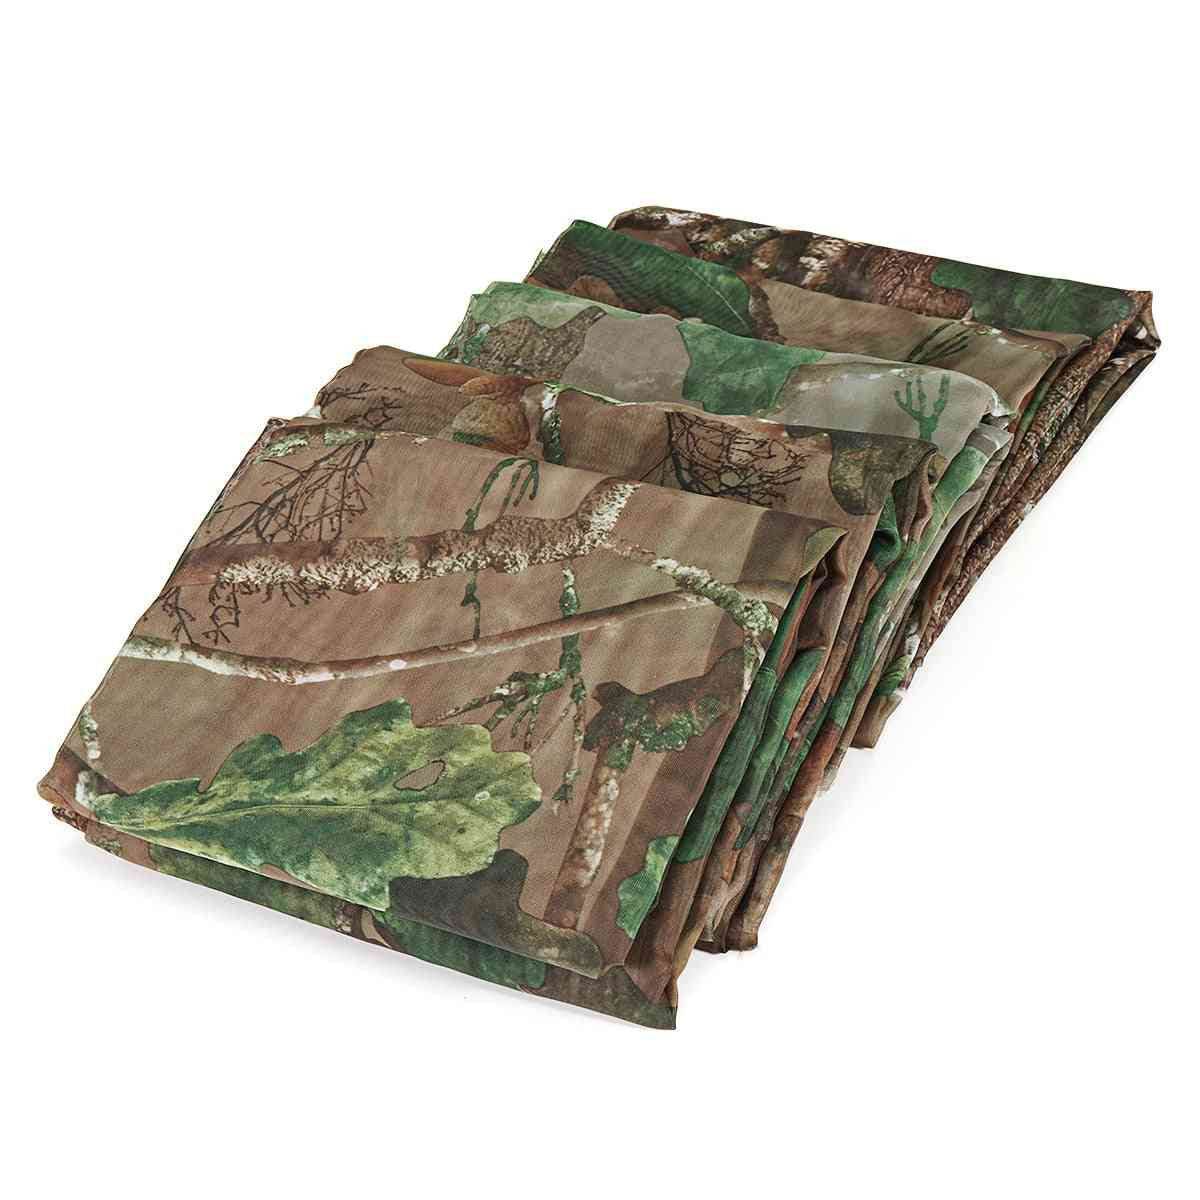 Multi-function Camouflage Printed, Ultra Light Net For Shooting And Wild Fowling